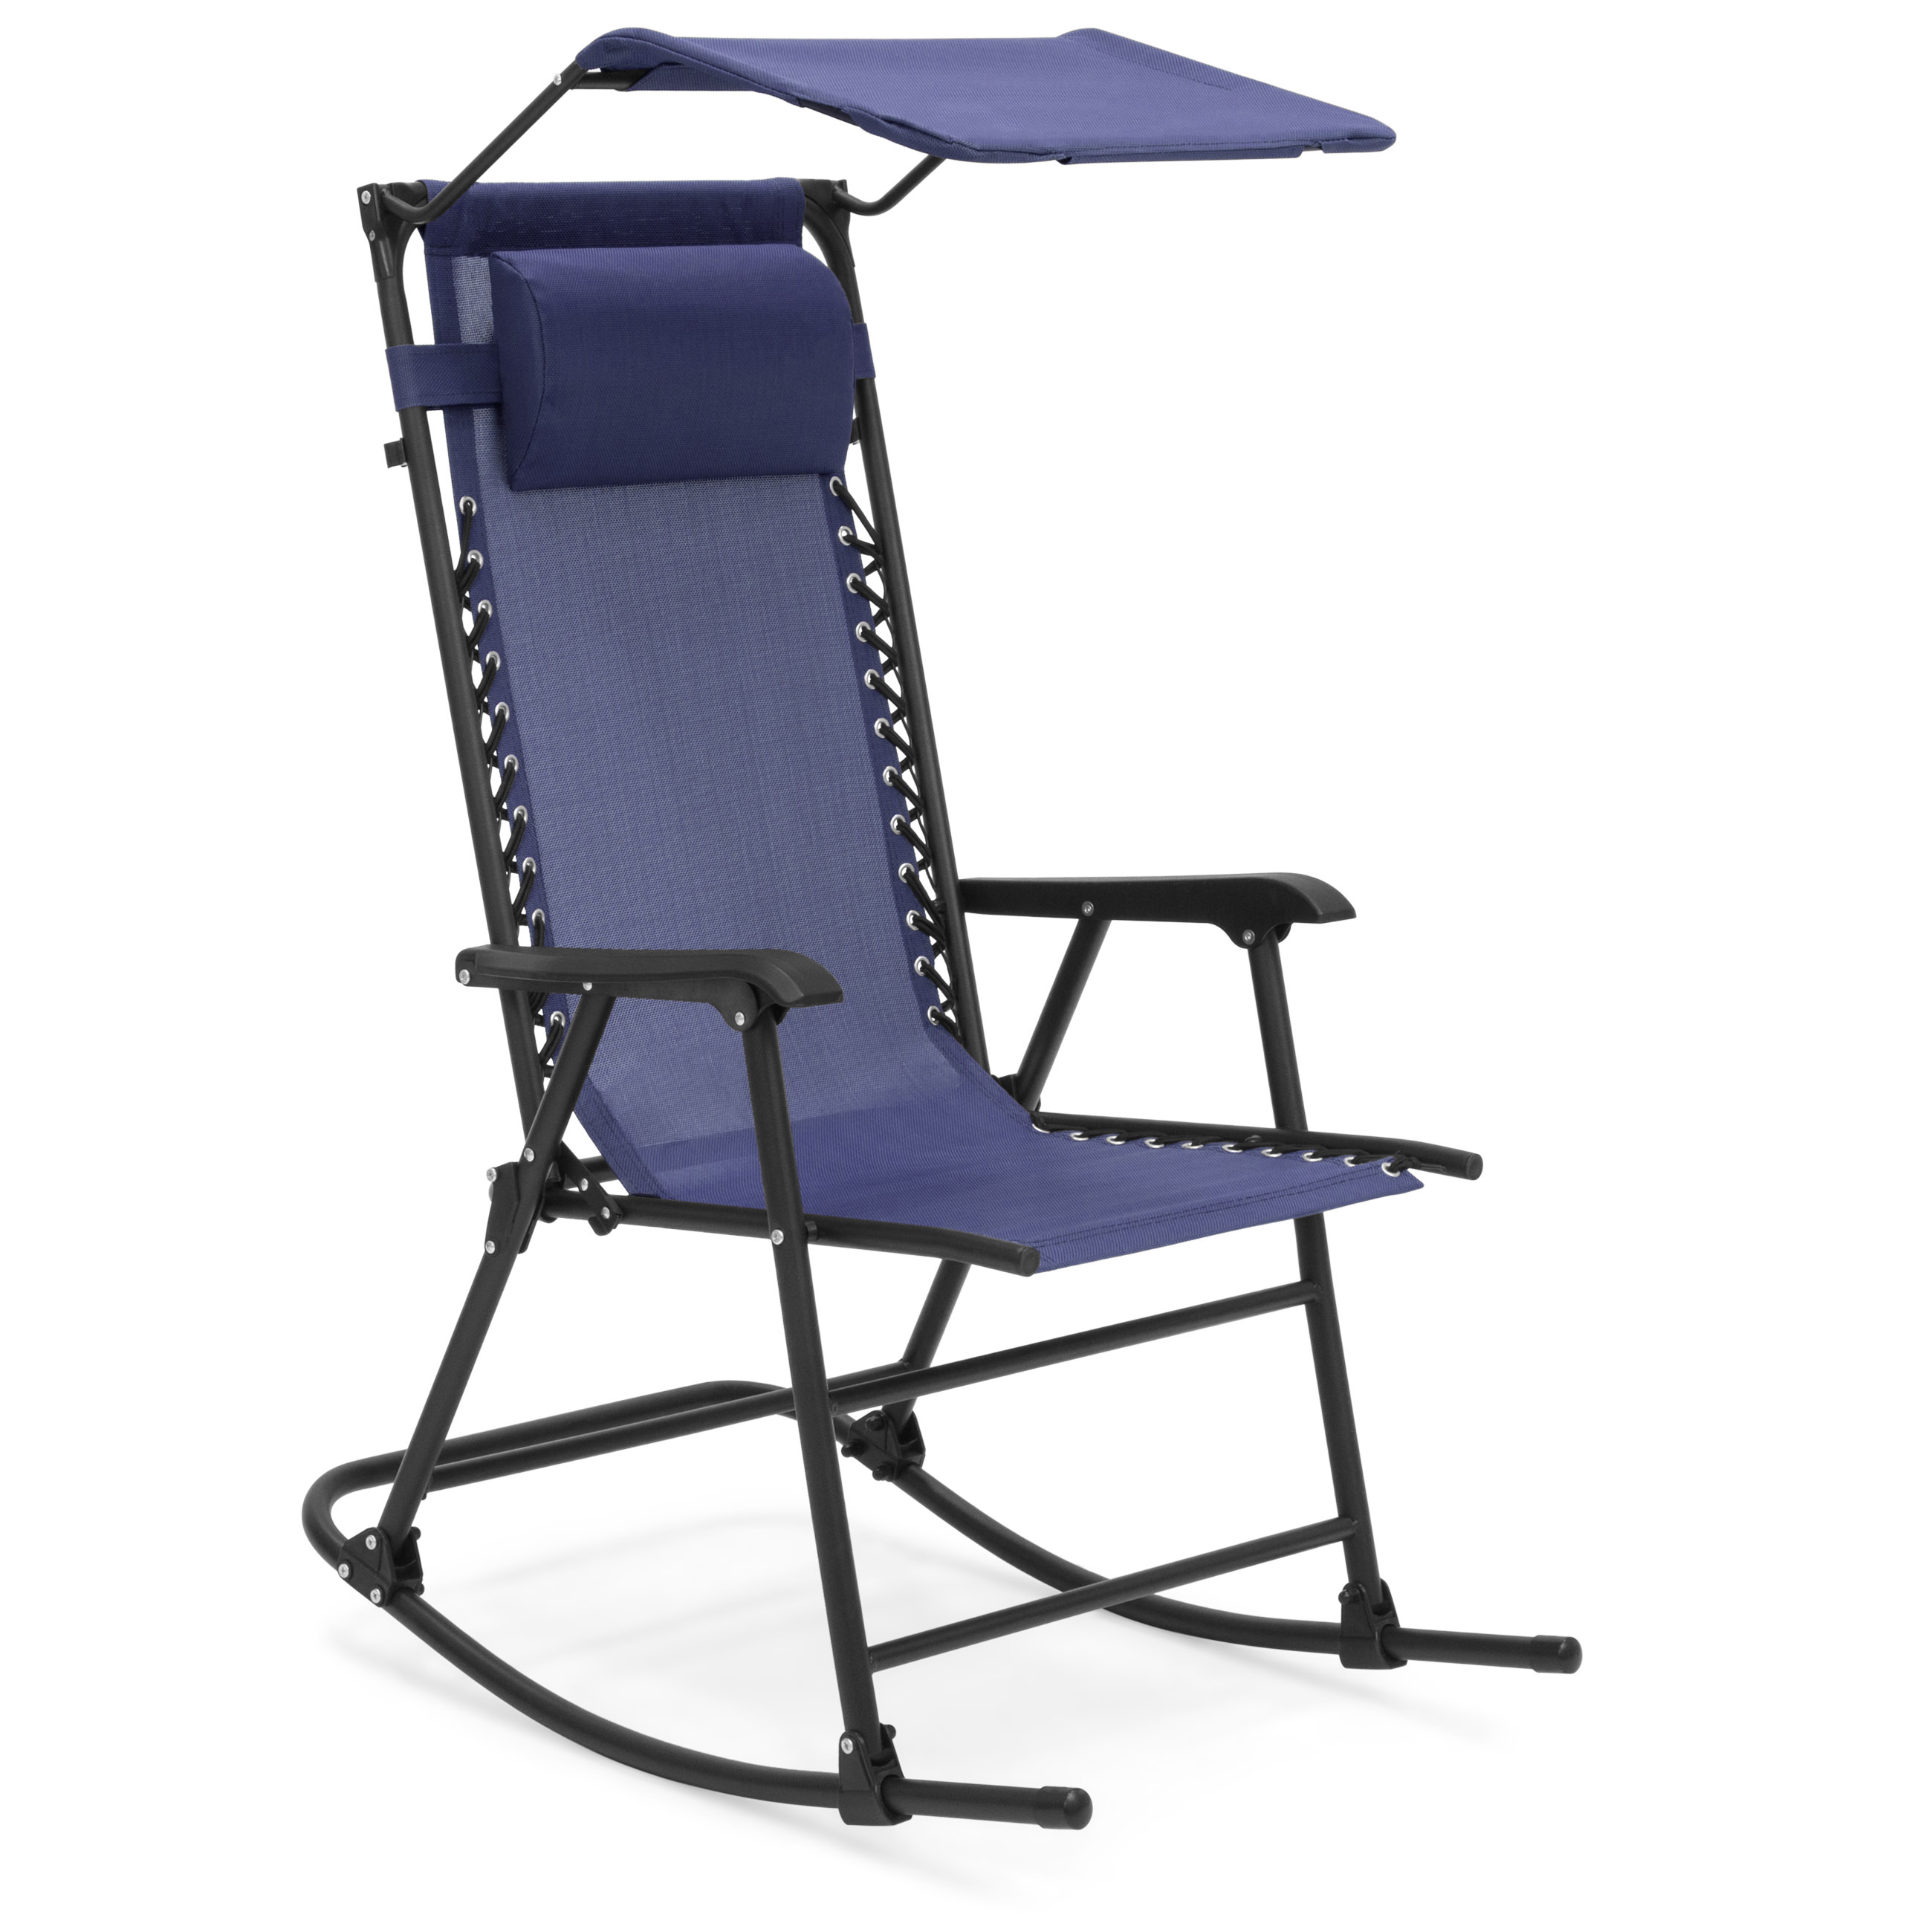 Best Choice Products Foldable Zero Gravity Rocking Patio Chair W/ Sunshade  Canopy   Navy Blue